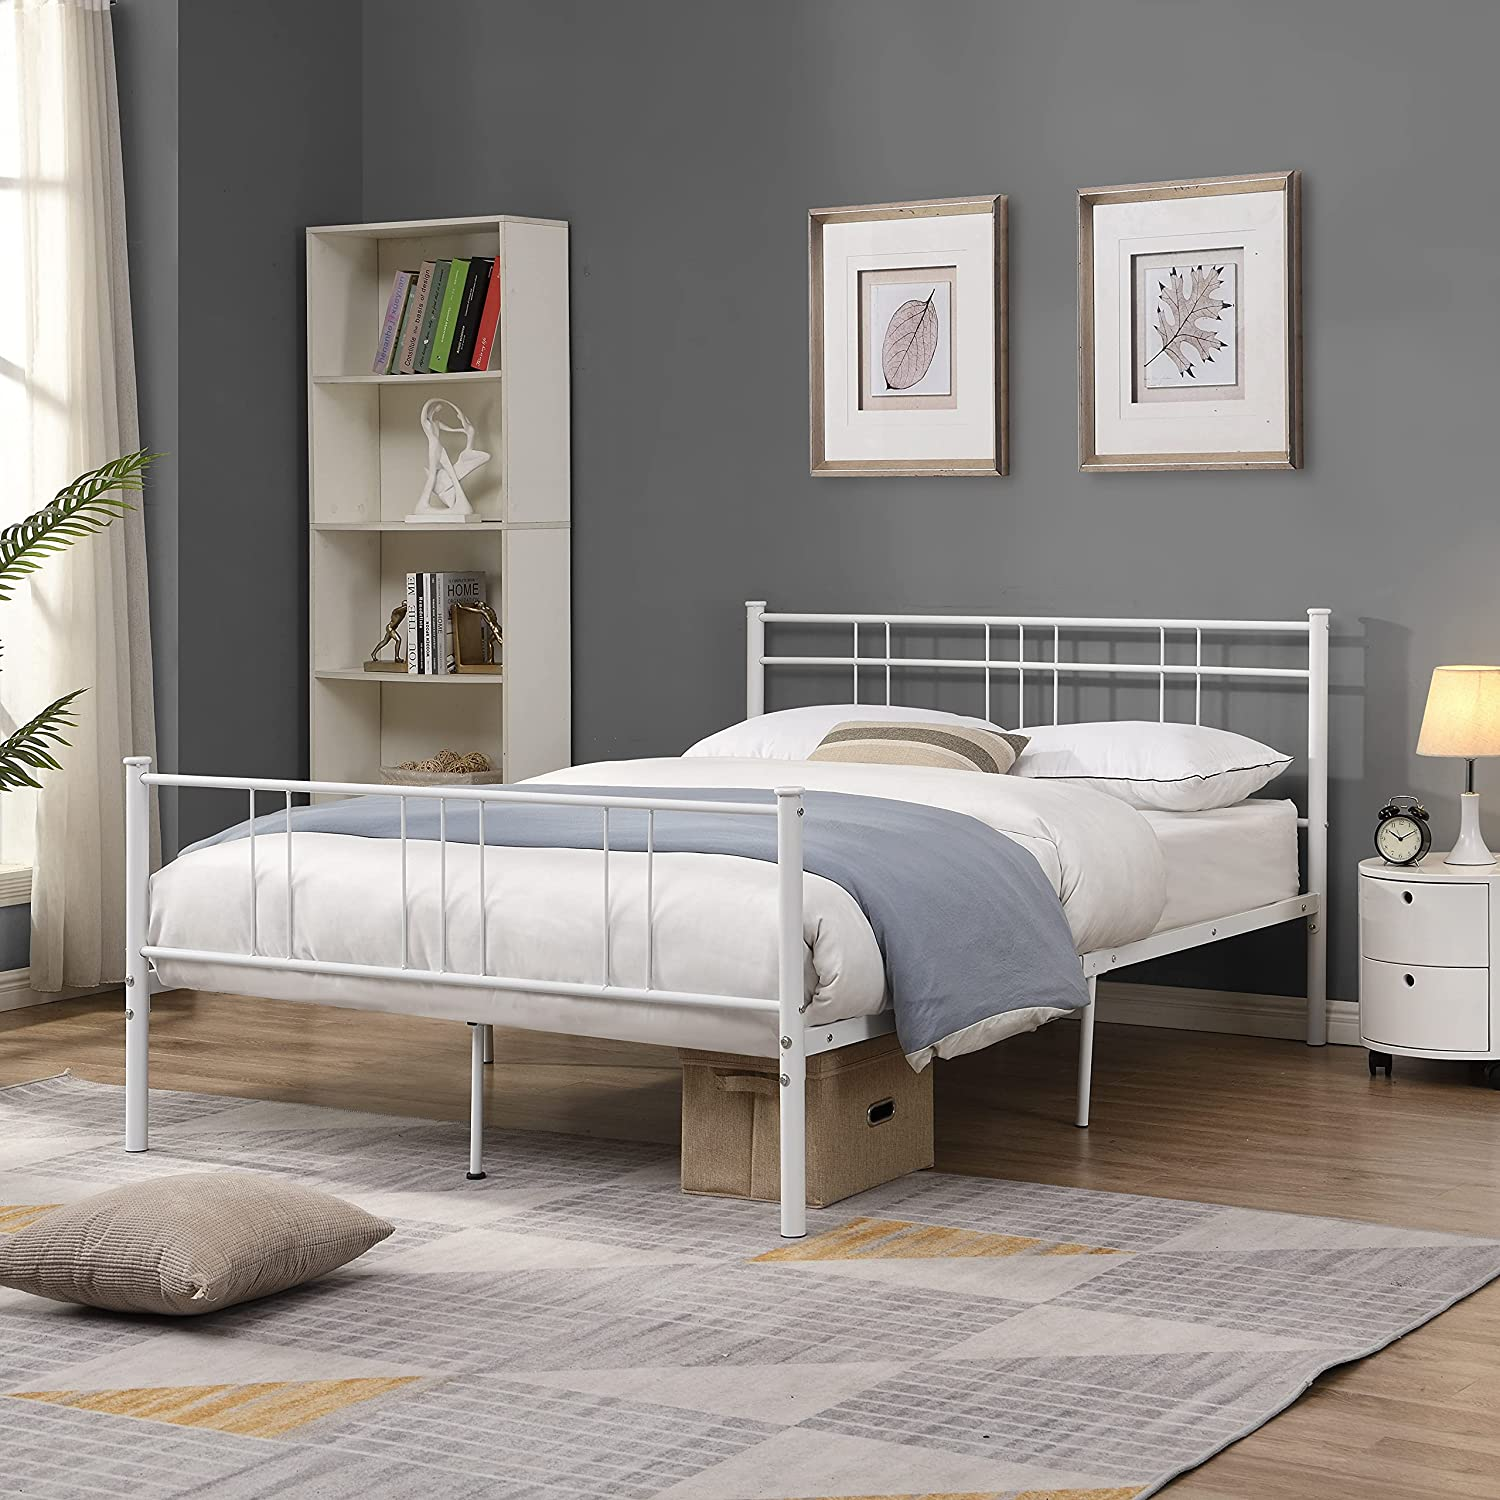 Large special price !! Full Size Bed Frame Metal Headboard Footboard and Detroit Mall Platform with